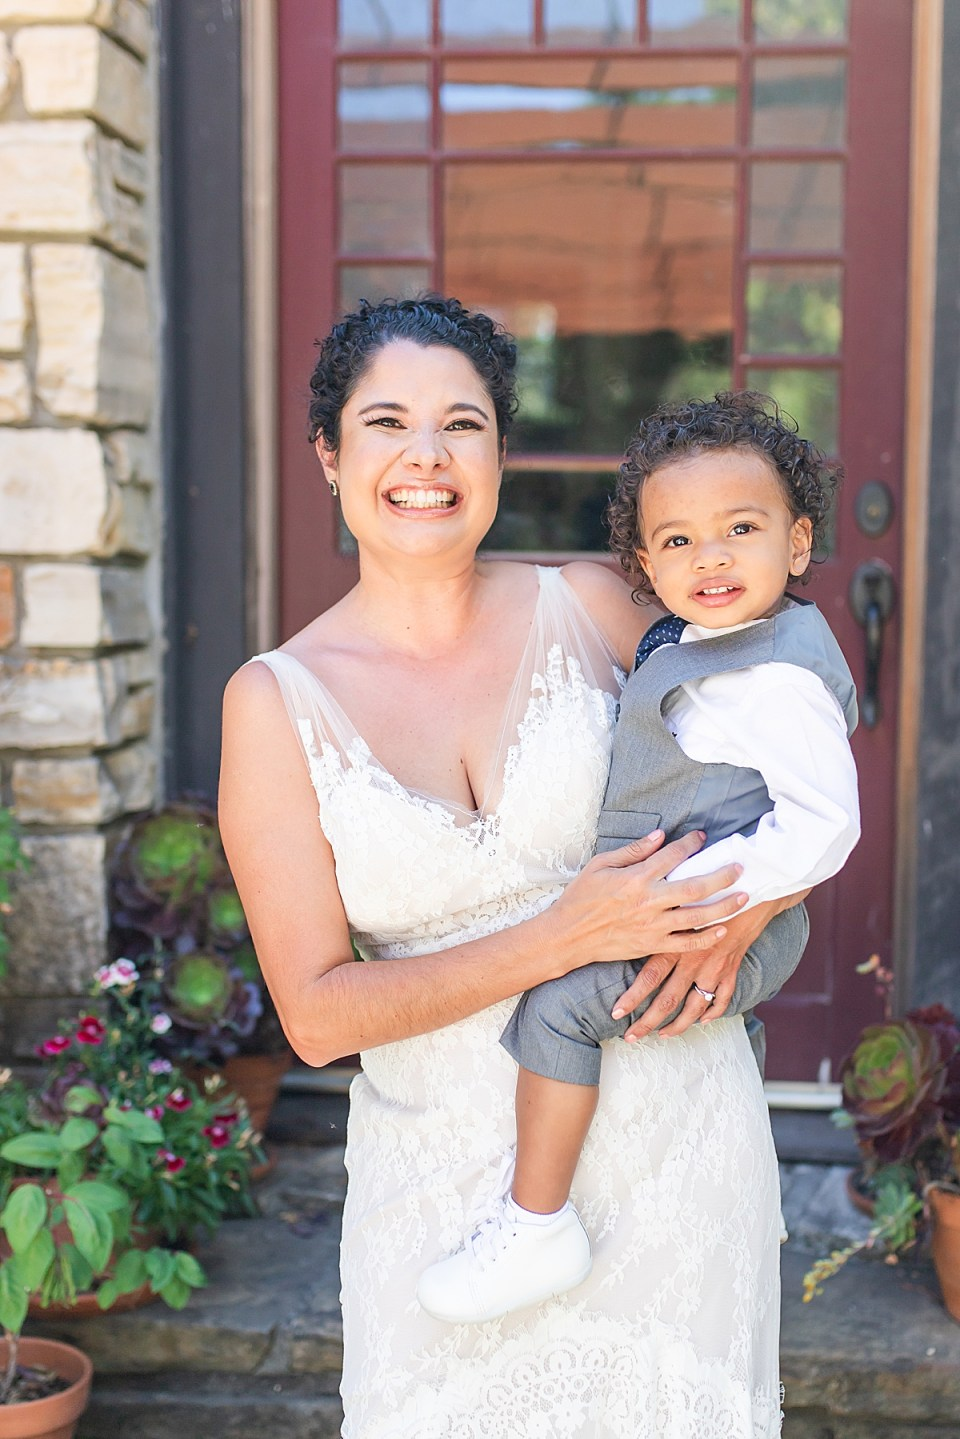 Brandi and her son smiling at the camera on her wedding day.